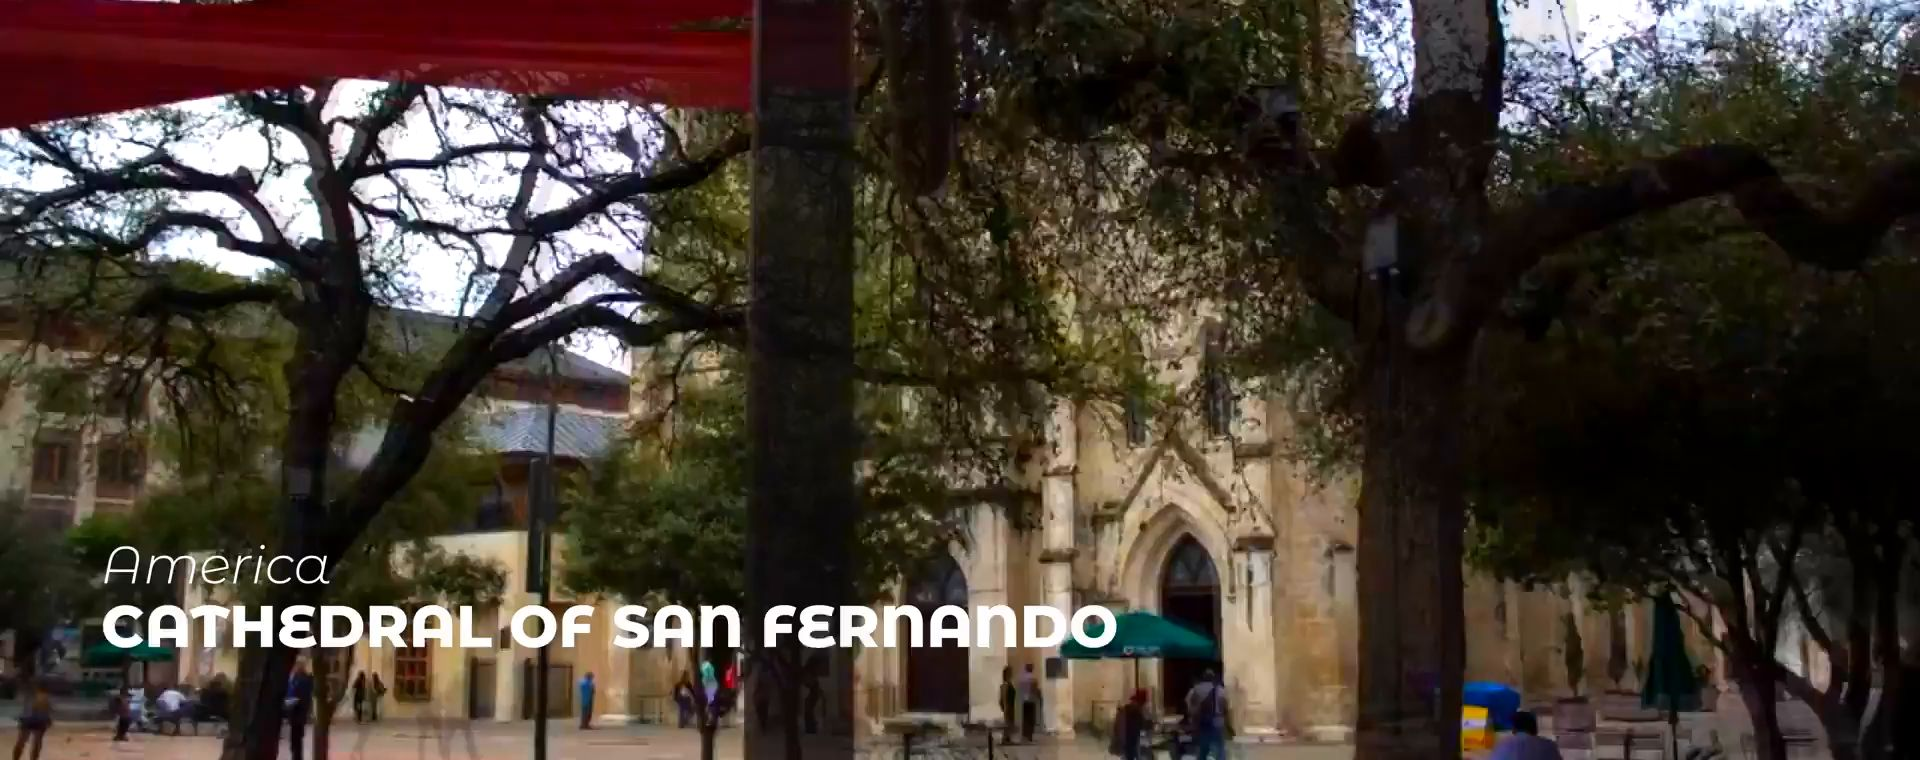 THE CATHEDRAL OF SAN FERNANDO